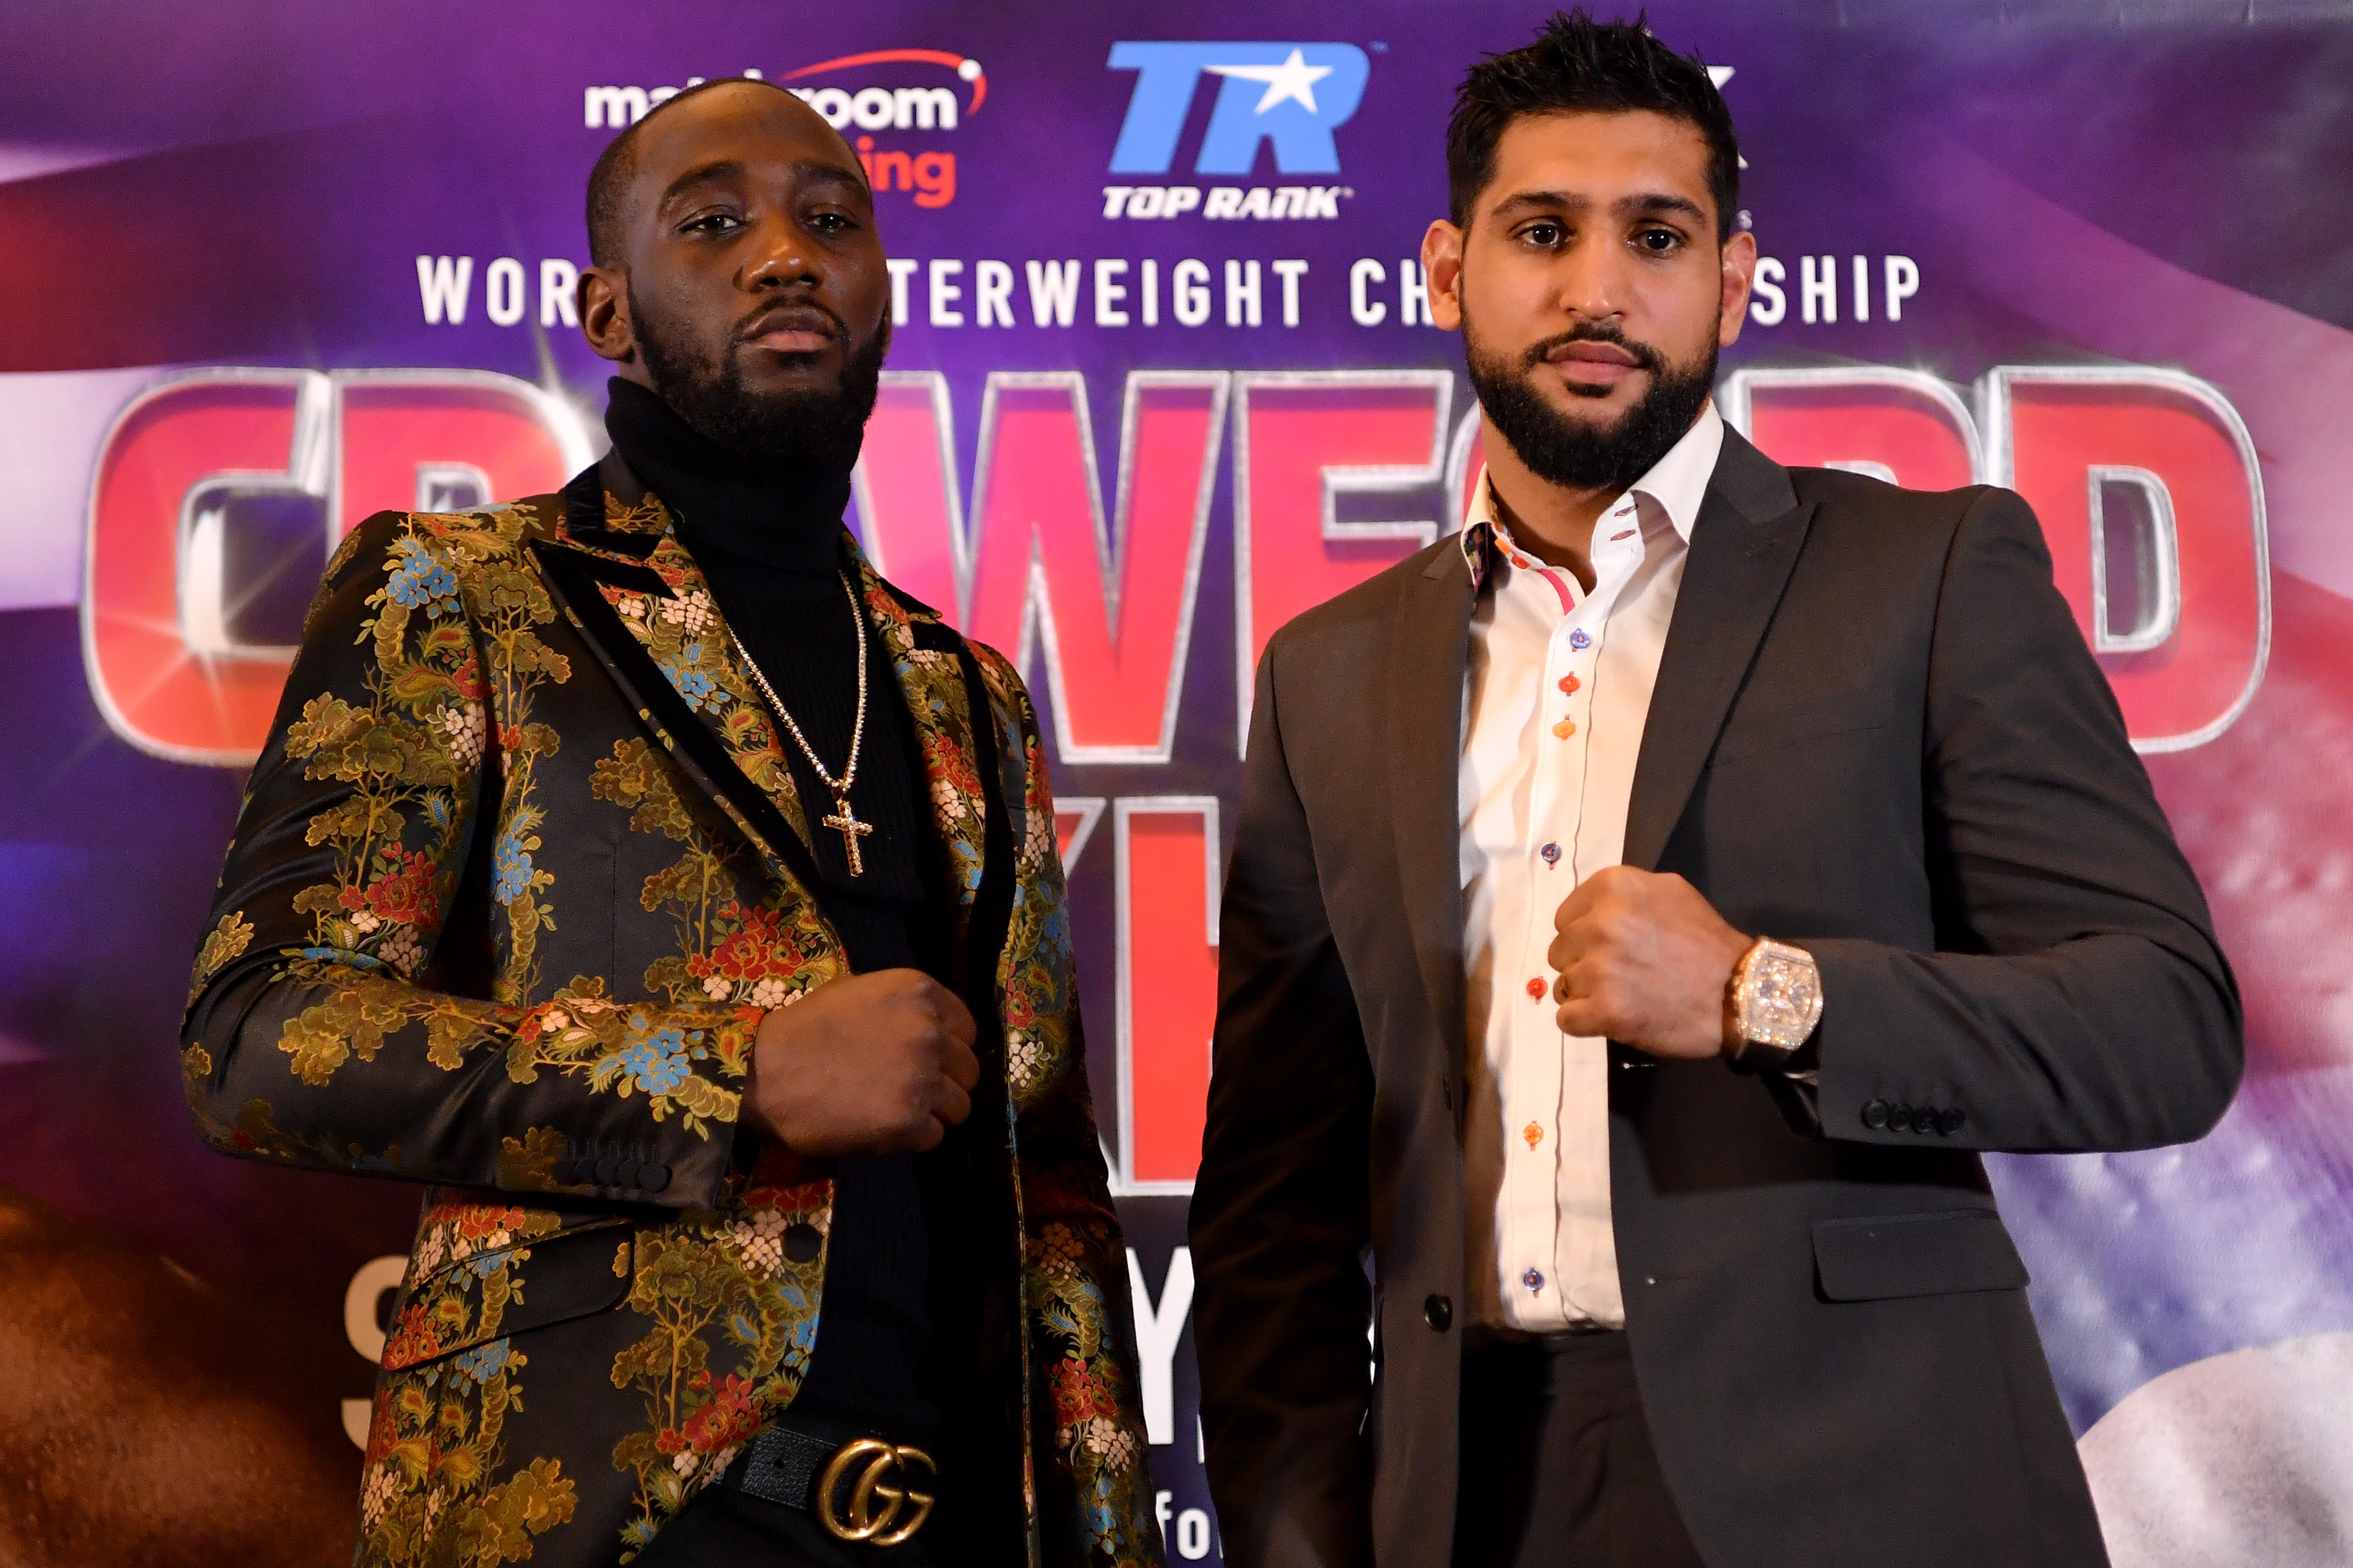 Amir Khan has agreed to face undefeated WBO world welterweight champion Terence Crawford in the United States on 20 April (Pic credit: Justin Setterfield/Getty Images)